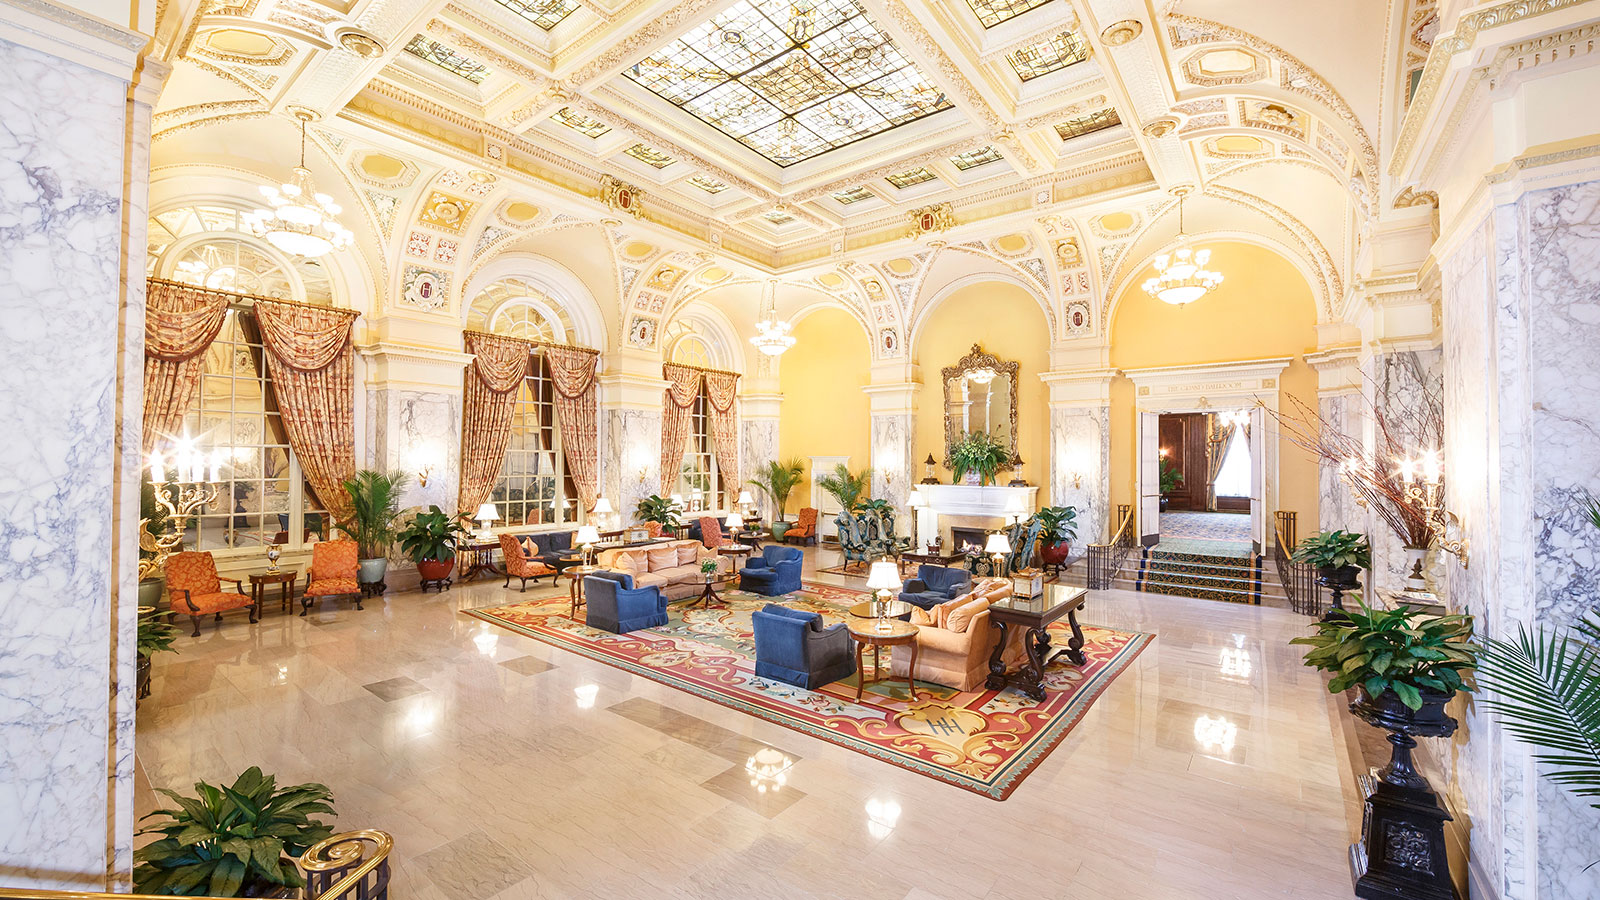 Image of the lobby of the Hermitage Hotel in Nashville, Tennessee